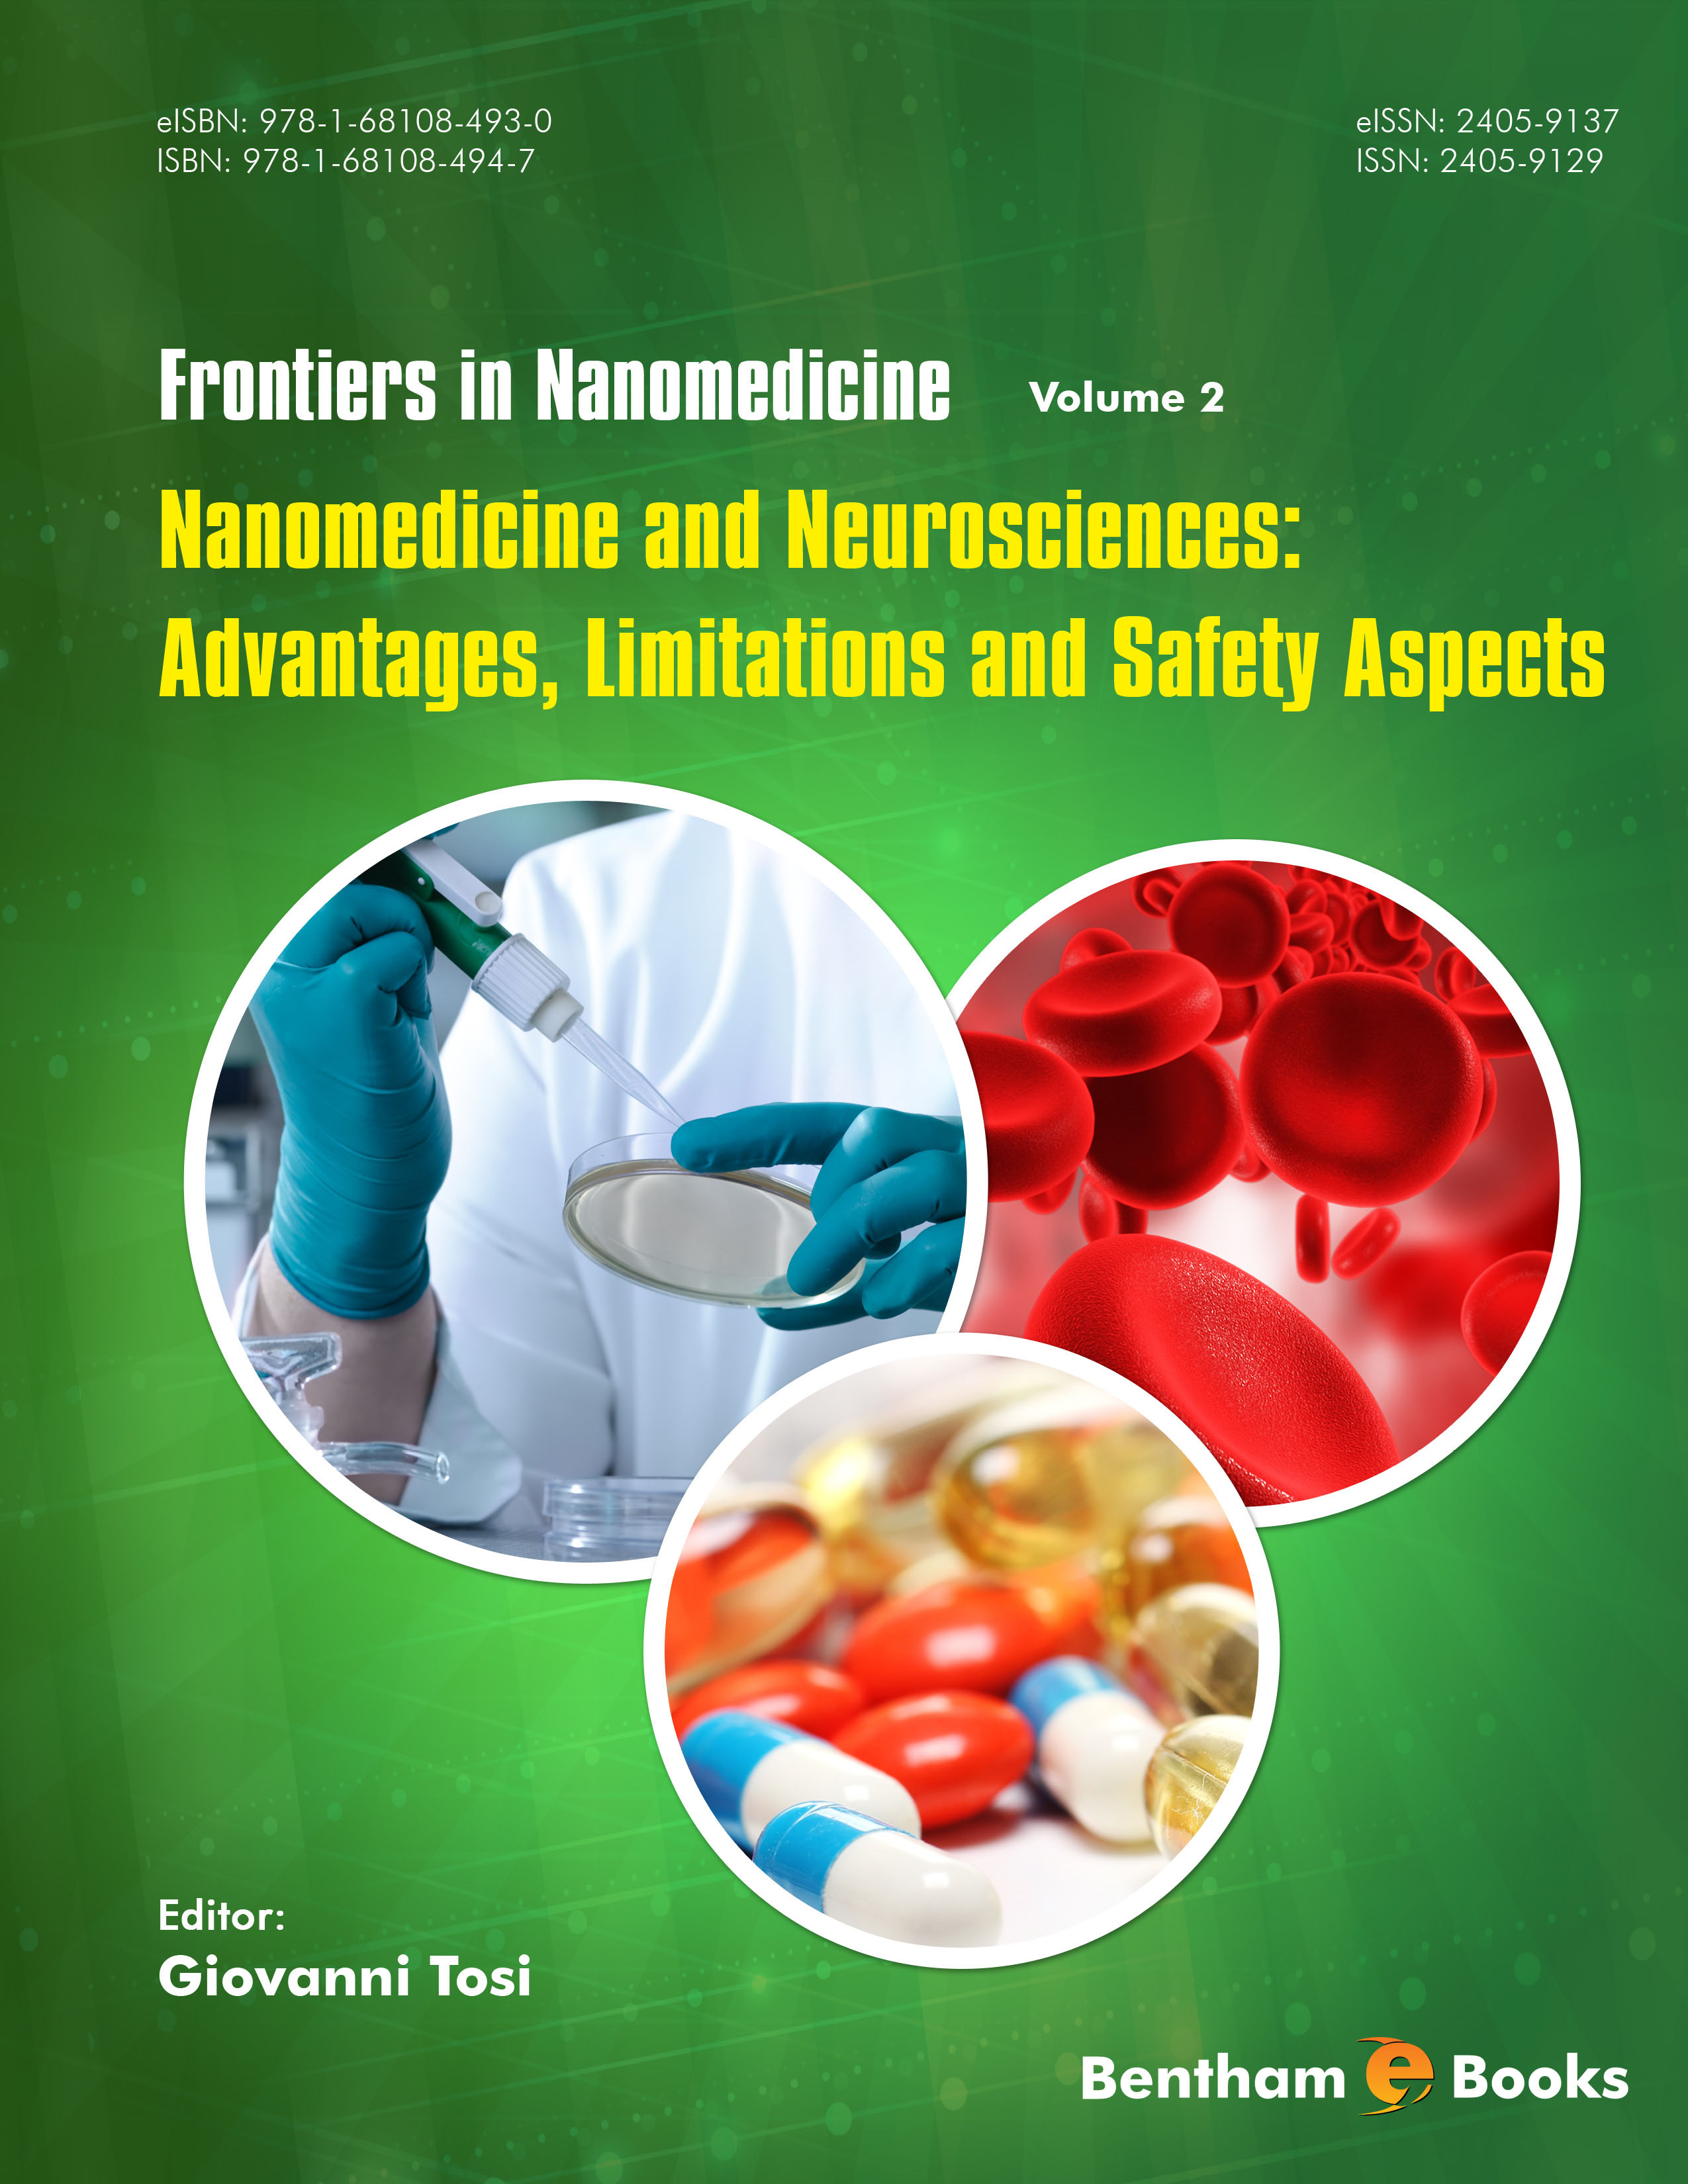 Nanomedicine and Neurosciences: Advantages, Limitations and Safety Aspects